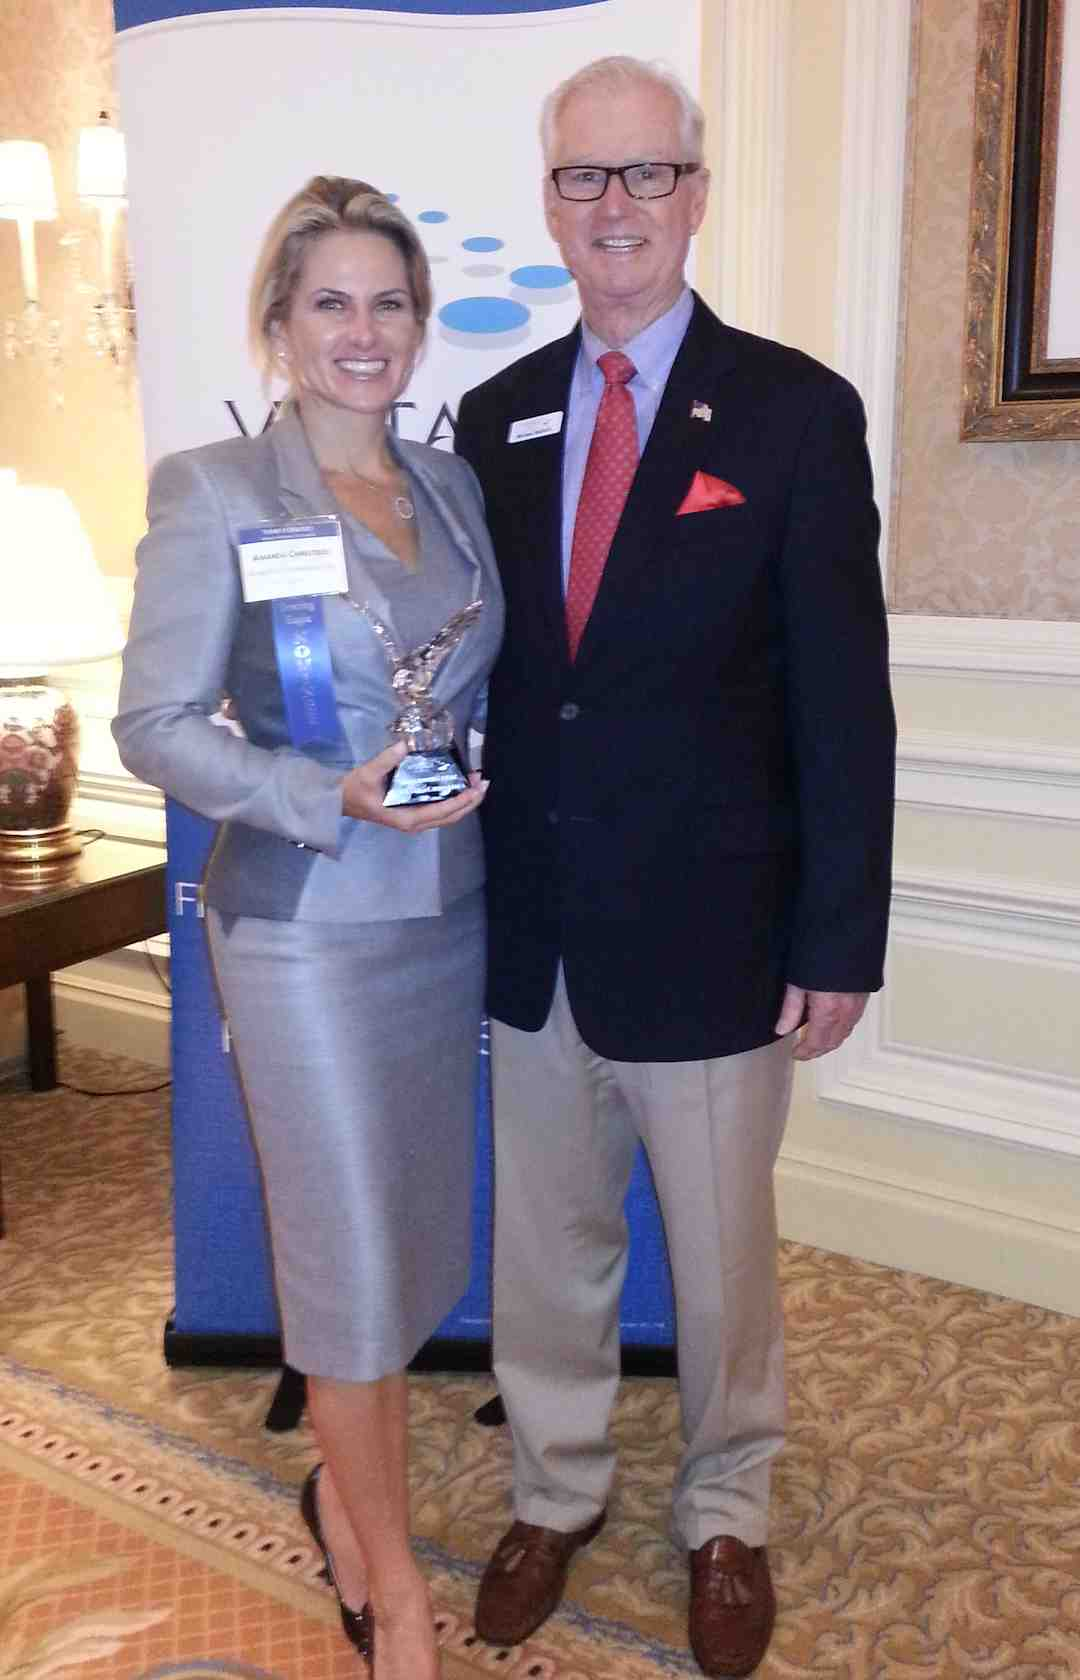 Amanda Christides and her Vistage Michigan CE Group Chair Michael Balloch